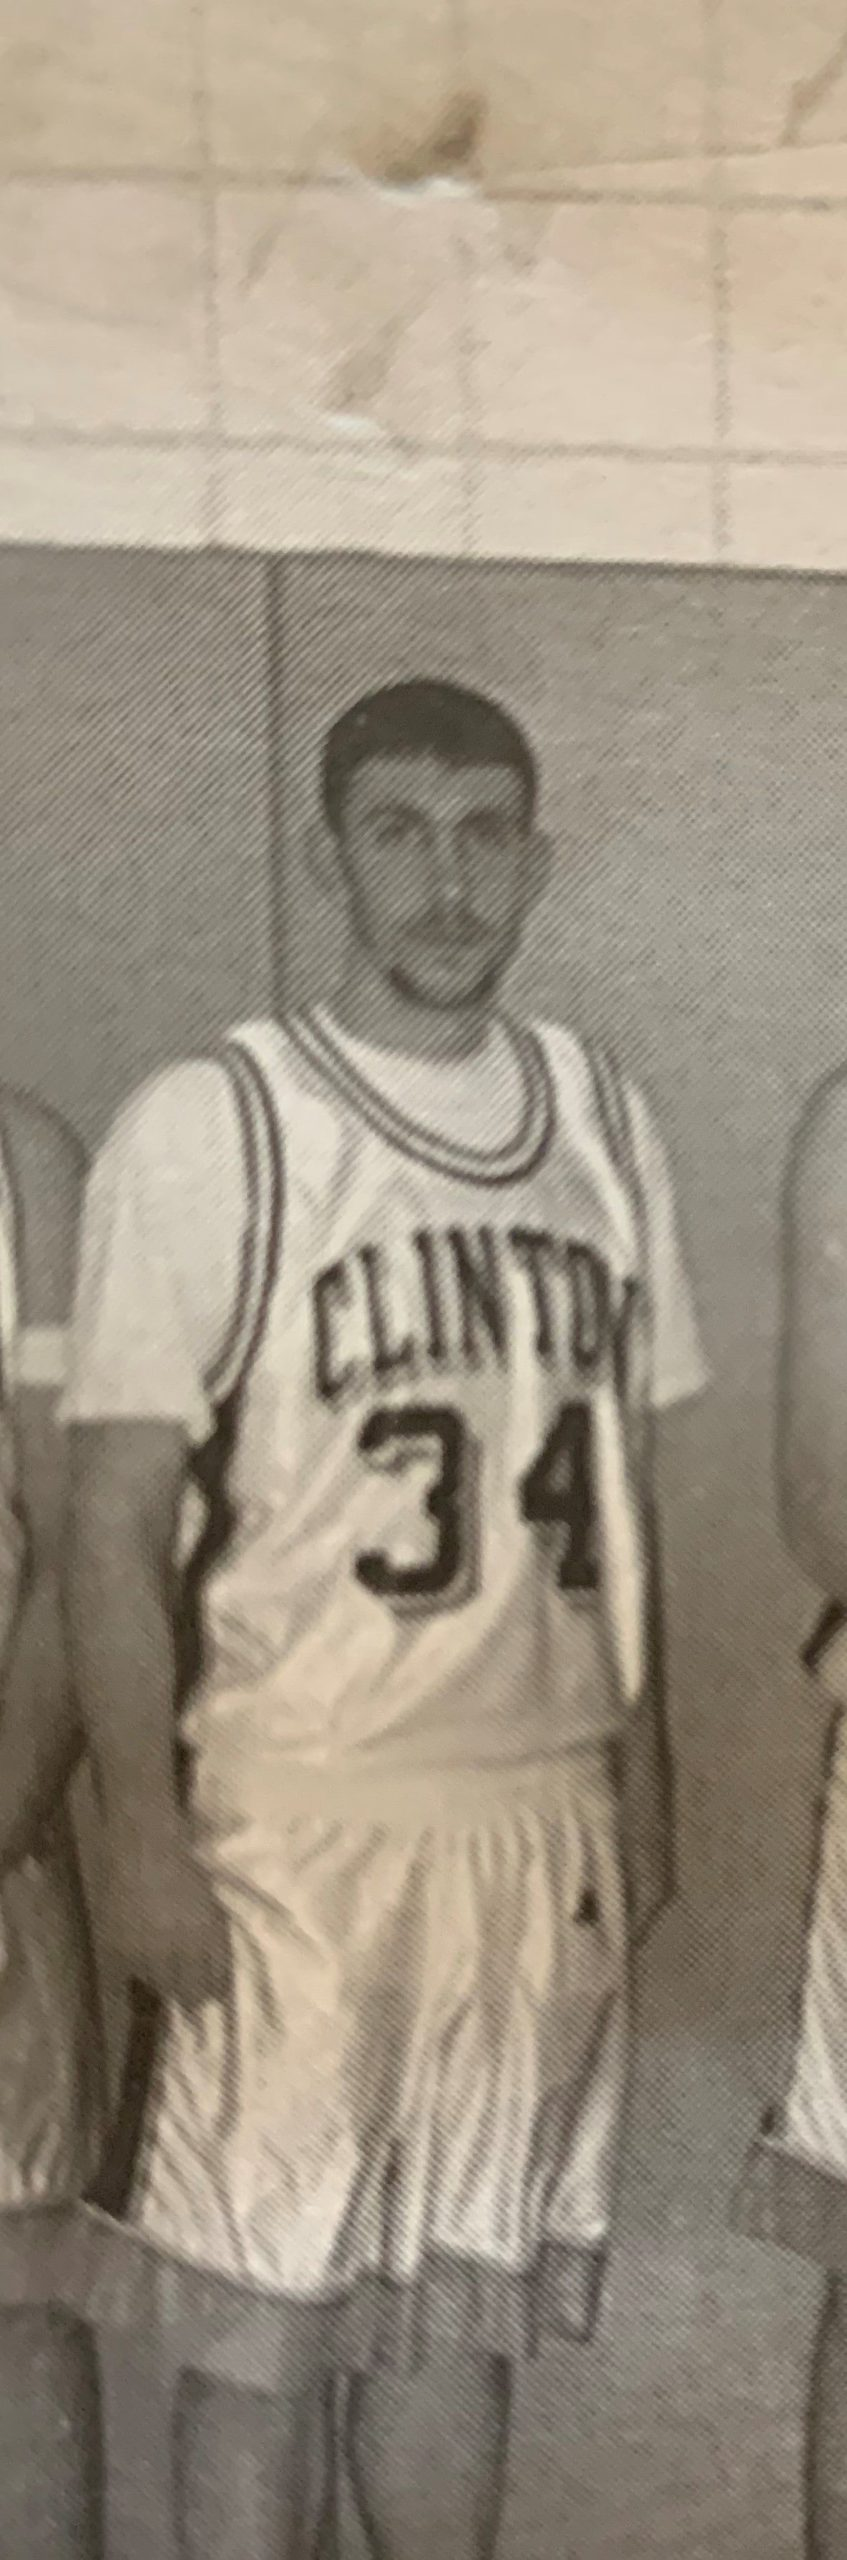 keith knuffke throwback photo